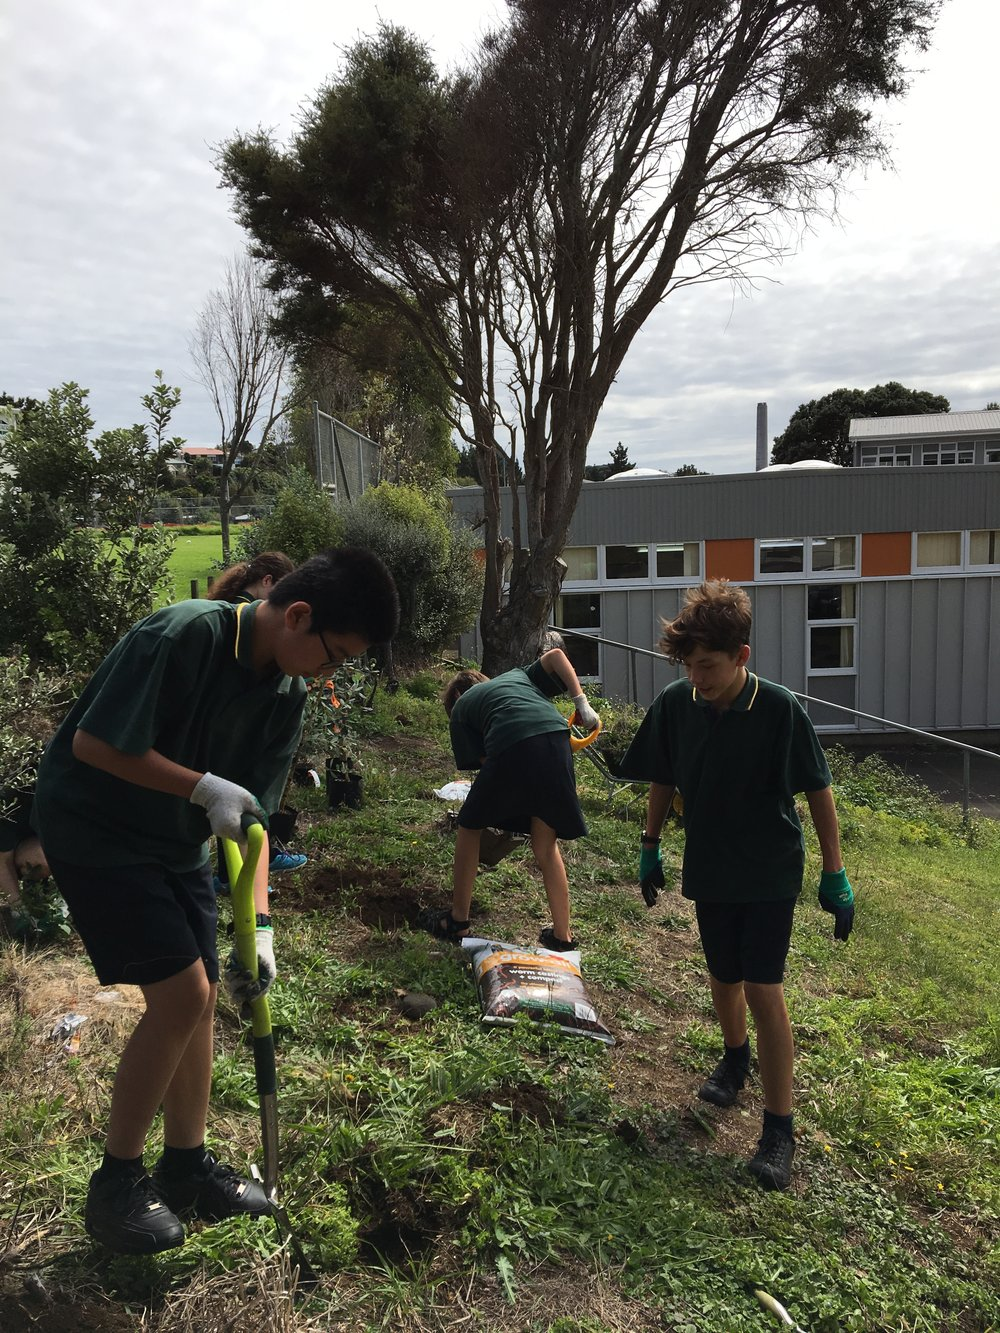 Spotswood students in action planting native trees around their school.